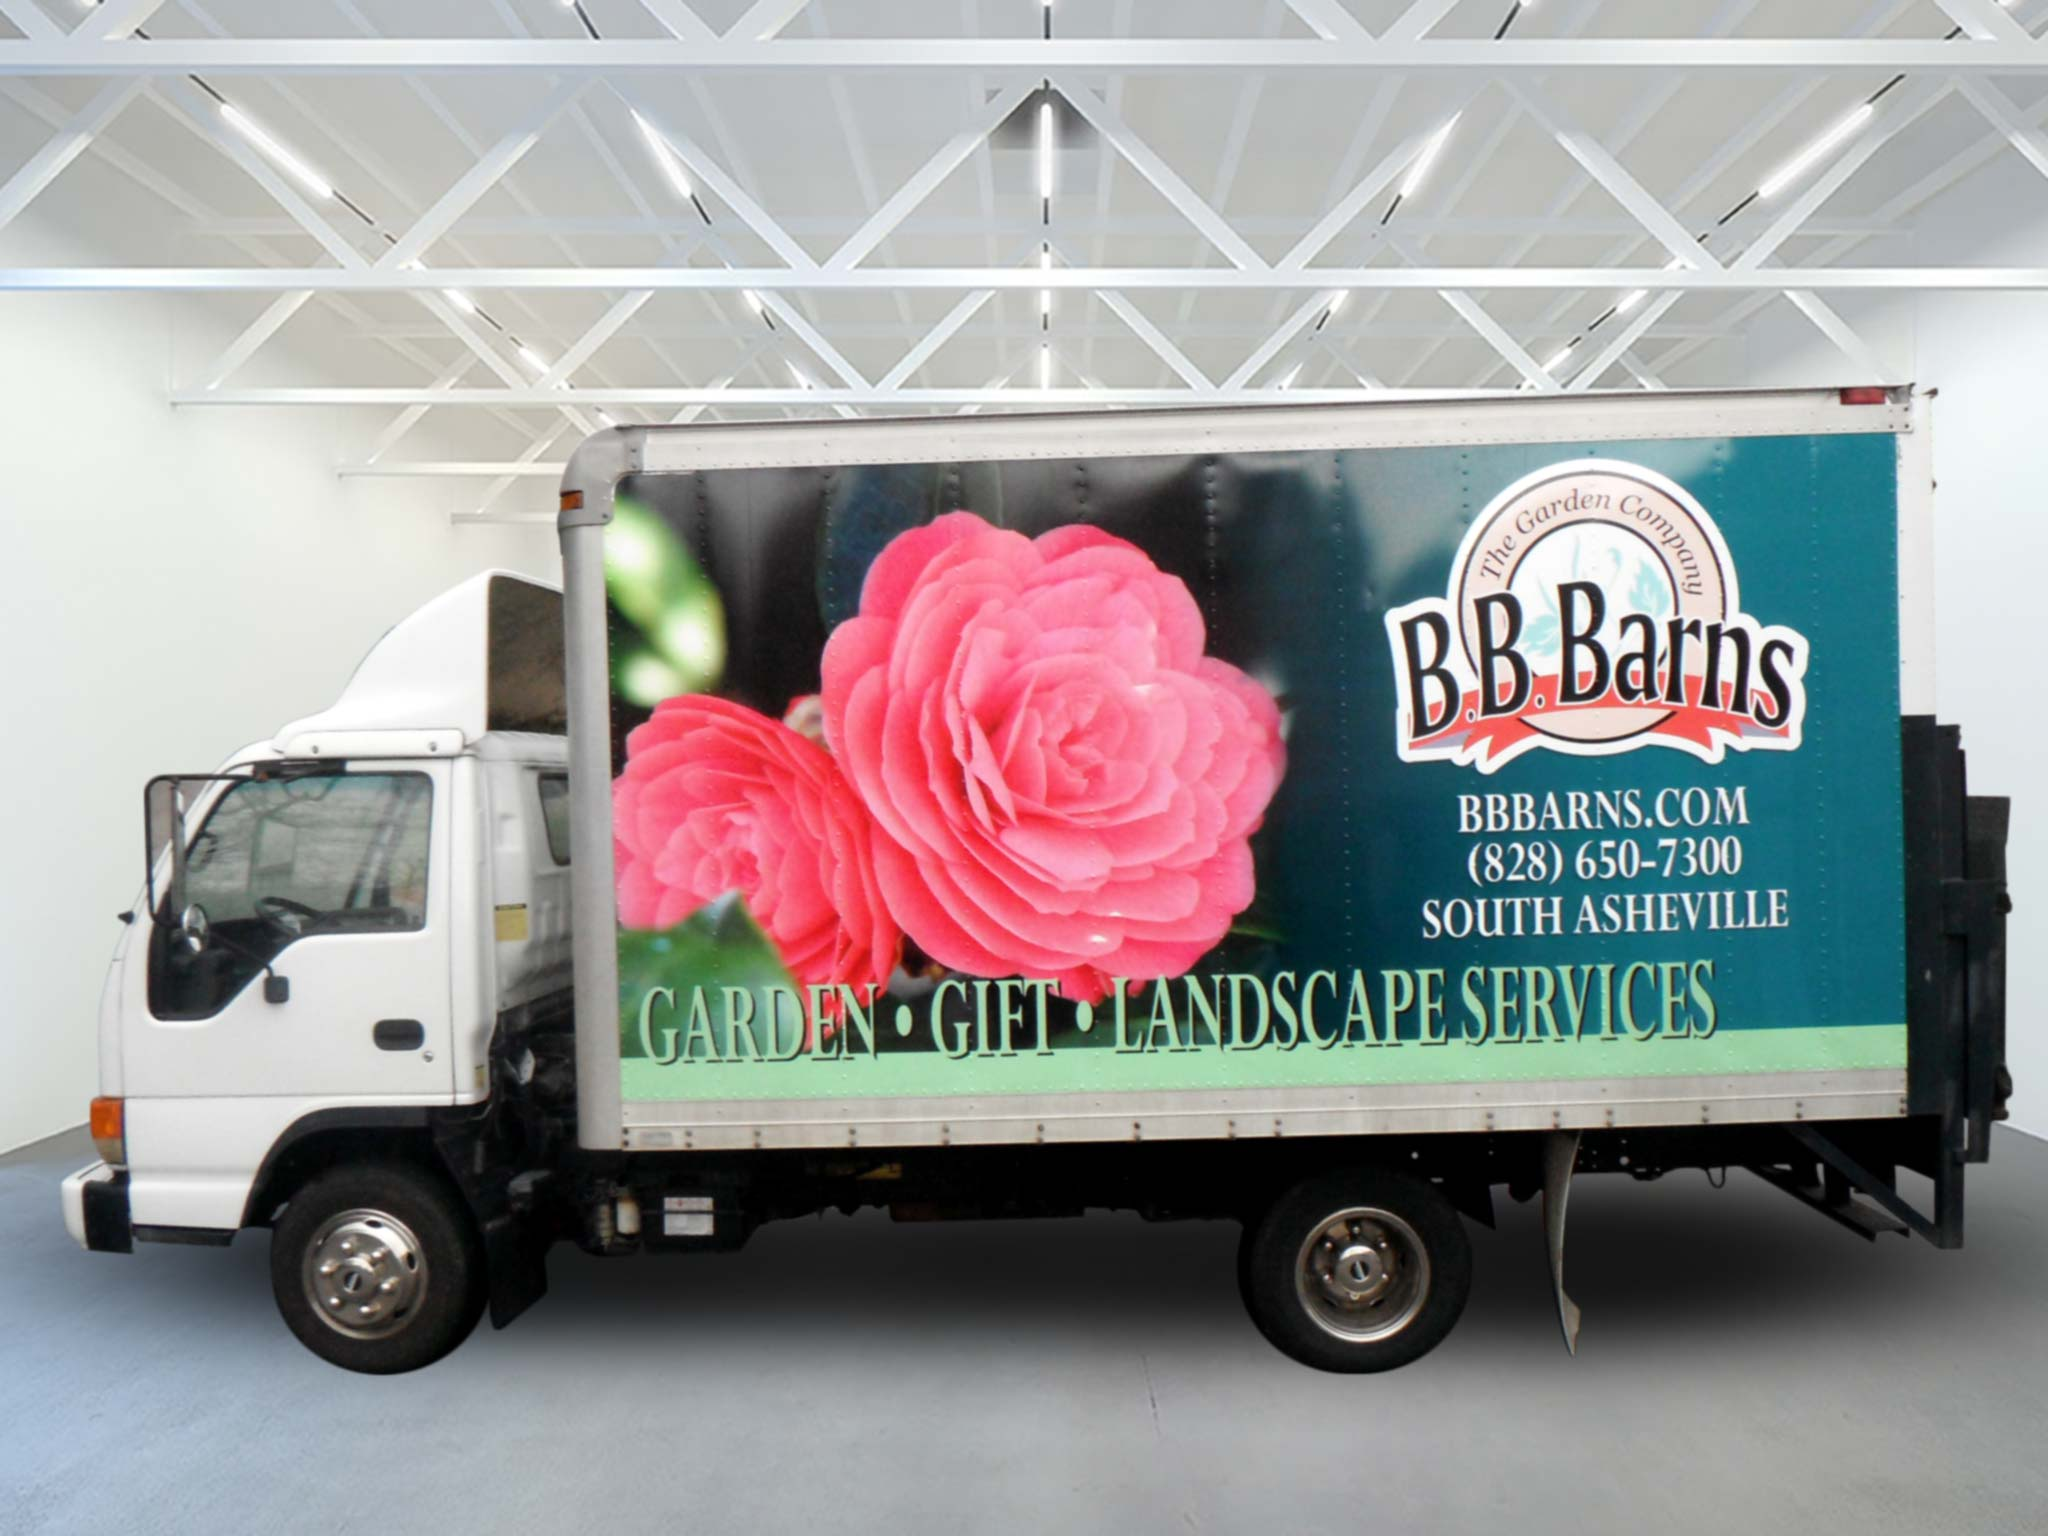 BB Barnes Box Truck